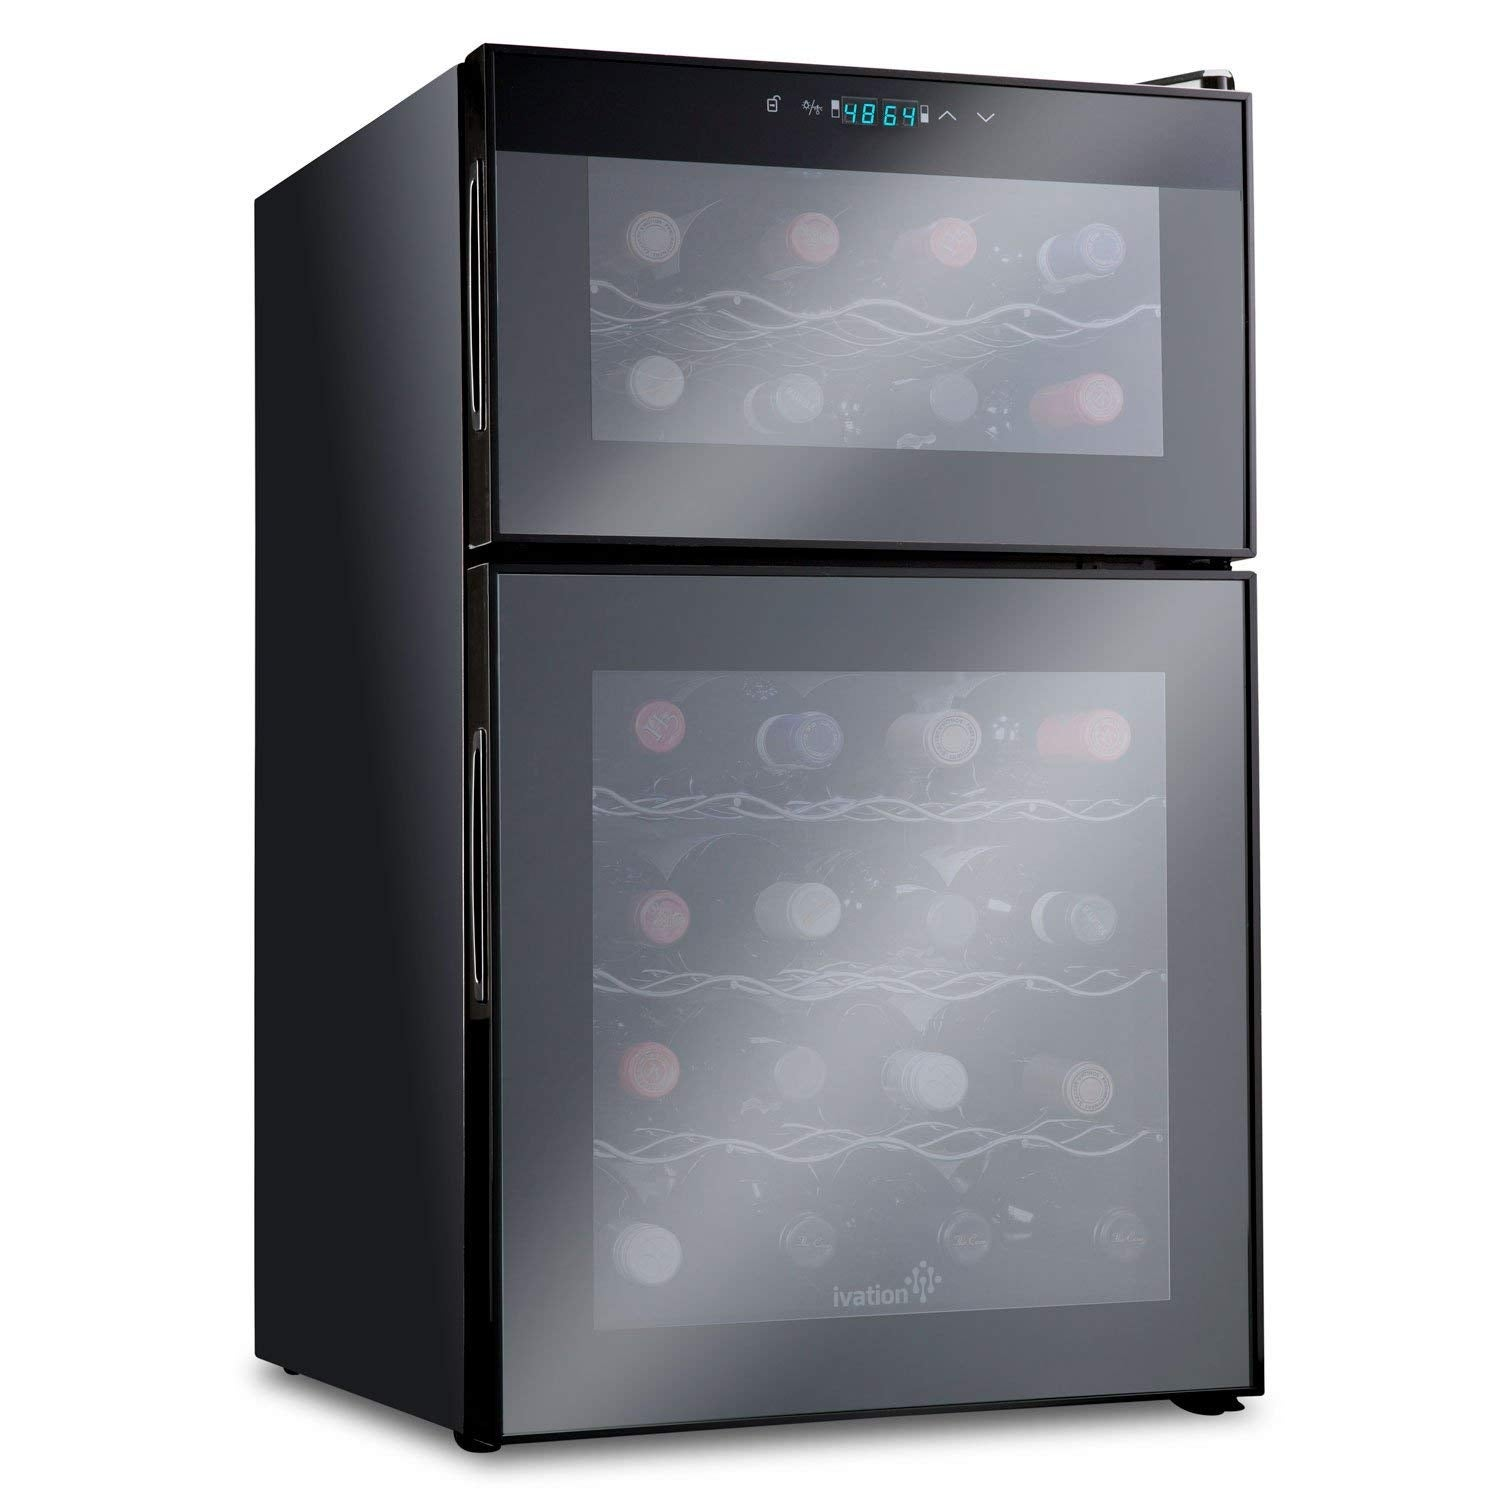 Buy Wine Refrigerators & Coolers Online at Overstock | Our ...